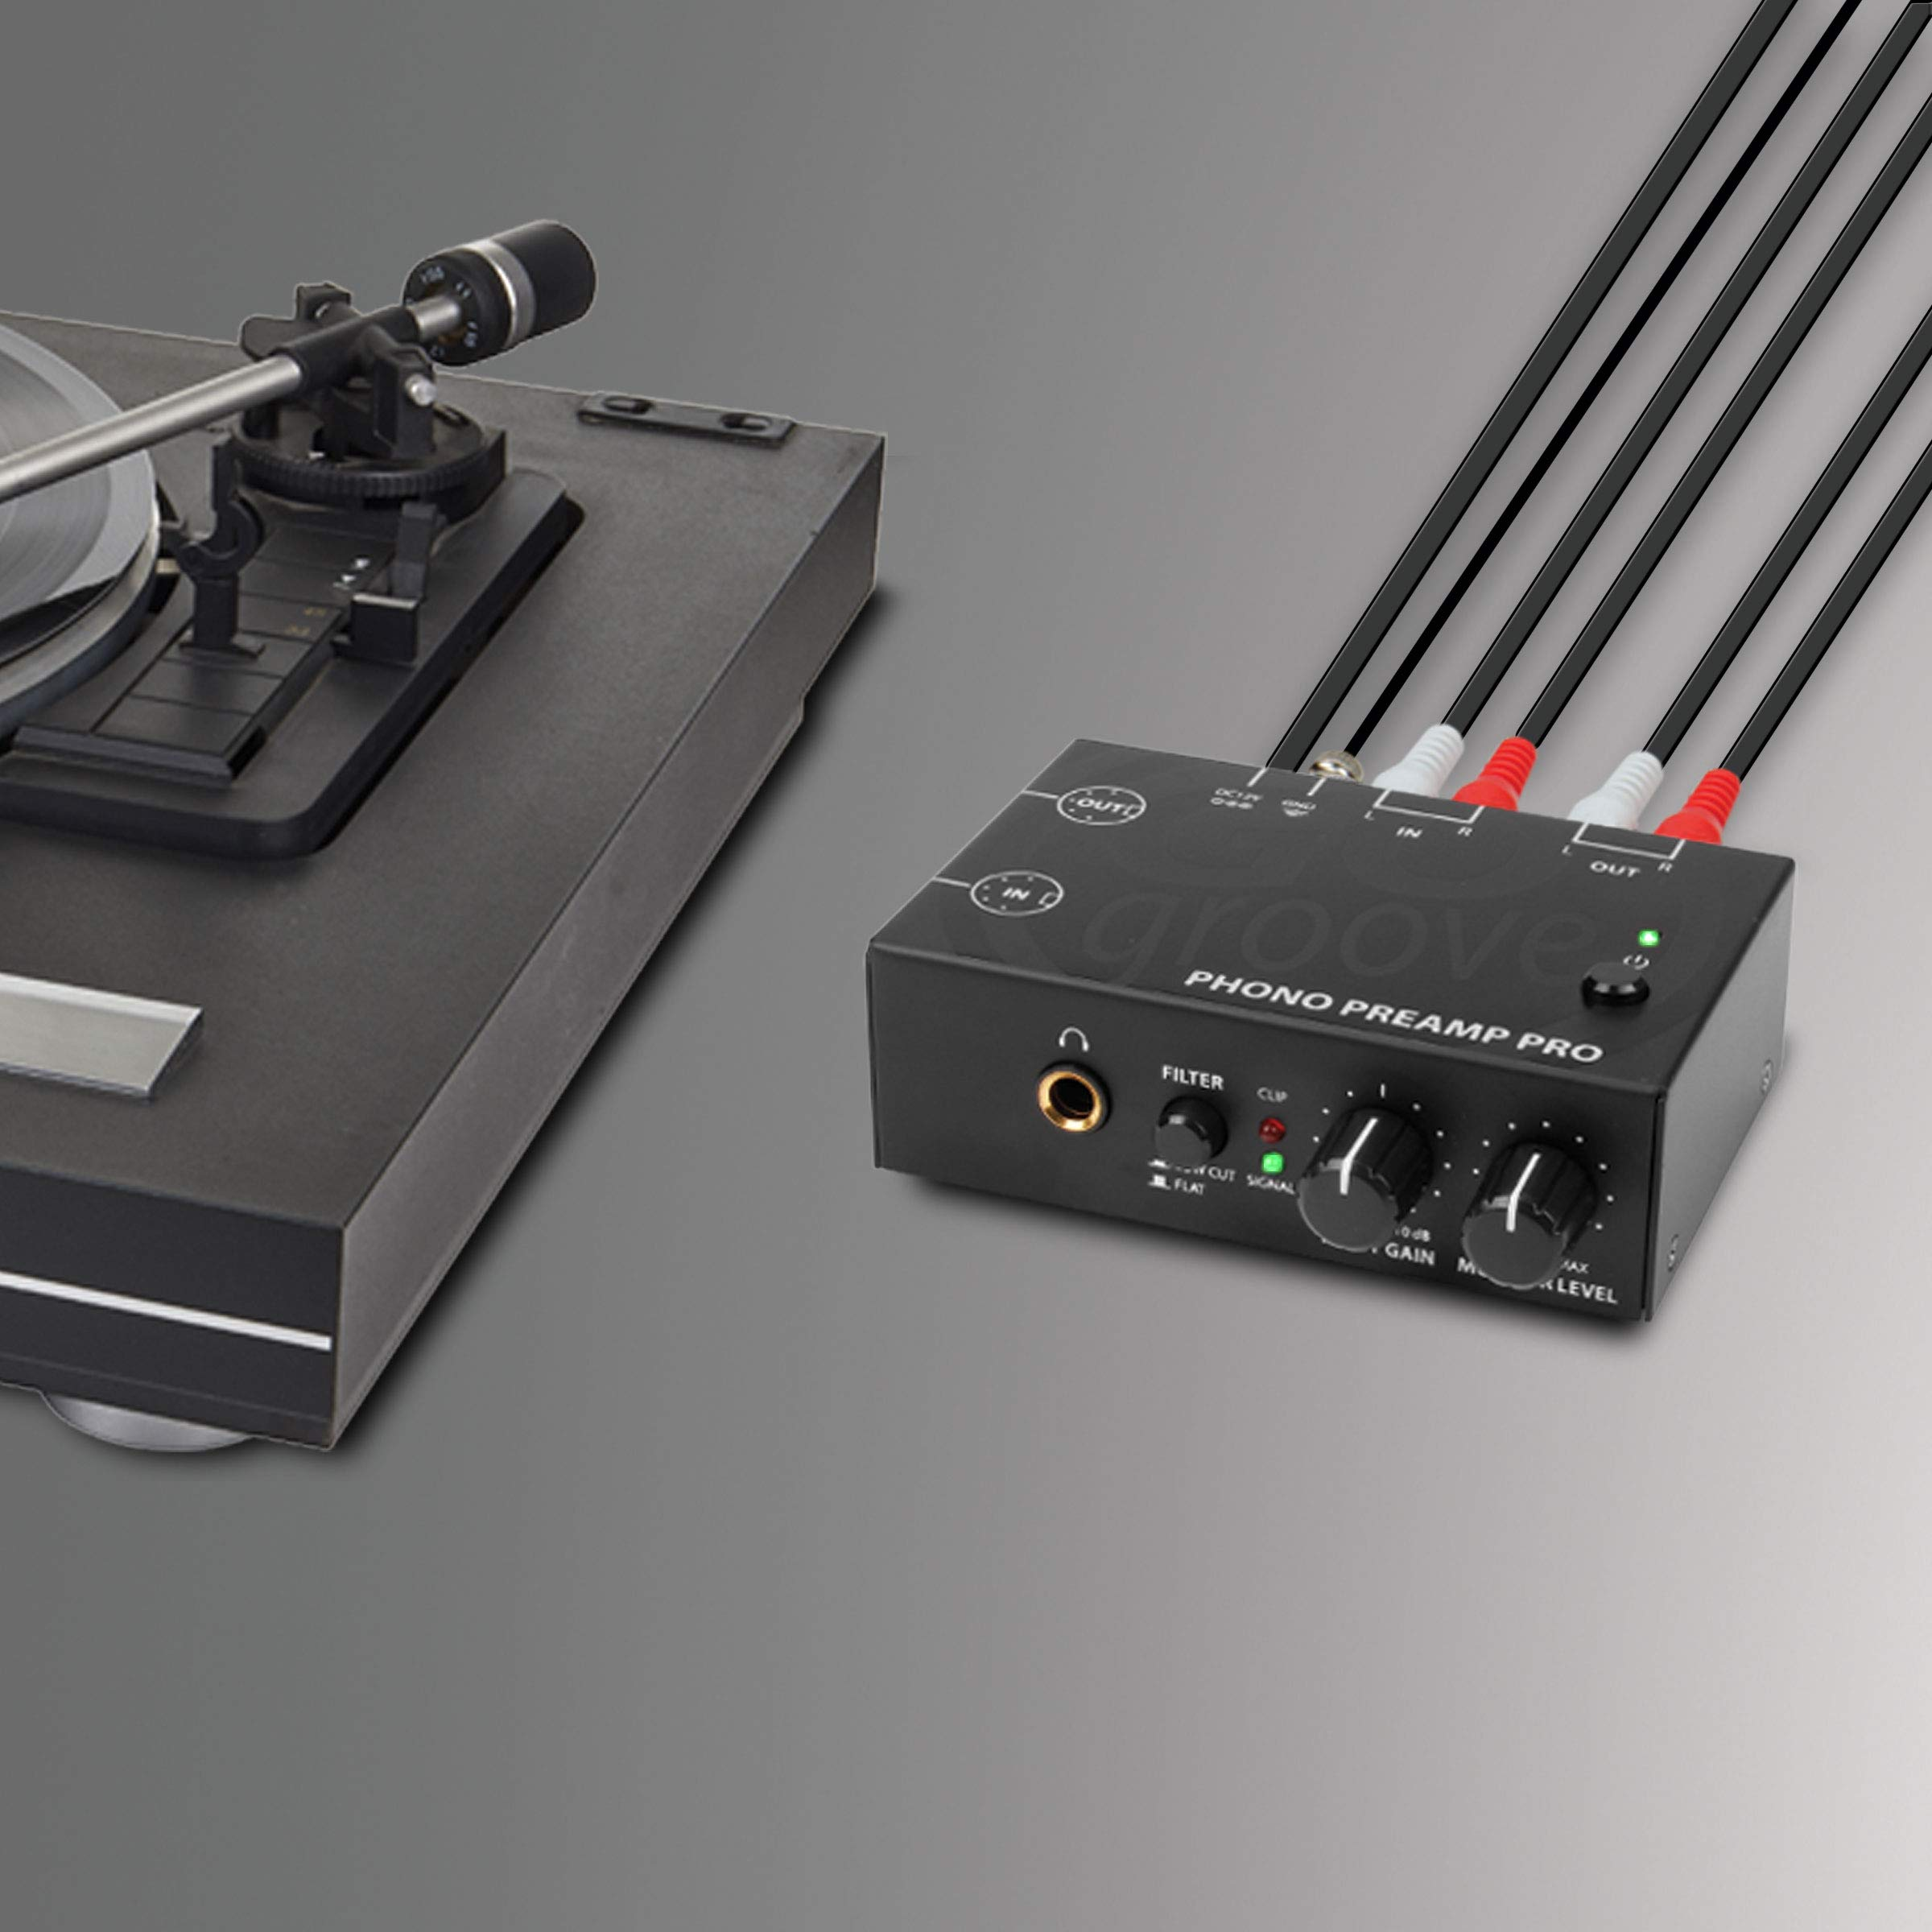 GOgroove Phono Preamp Pro Preamplifier with RCA Input/Output, DIN Connection, RIAA Equalization, 12V AC Adapter - Compatible with Vinyl Record Players, Turntables, Stereos, DJ Mixers by GOgroove (Image #8)